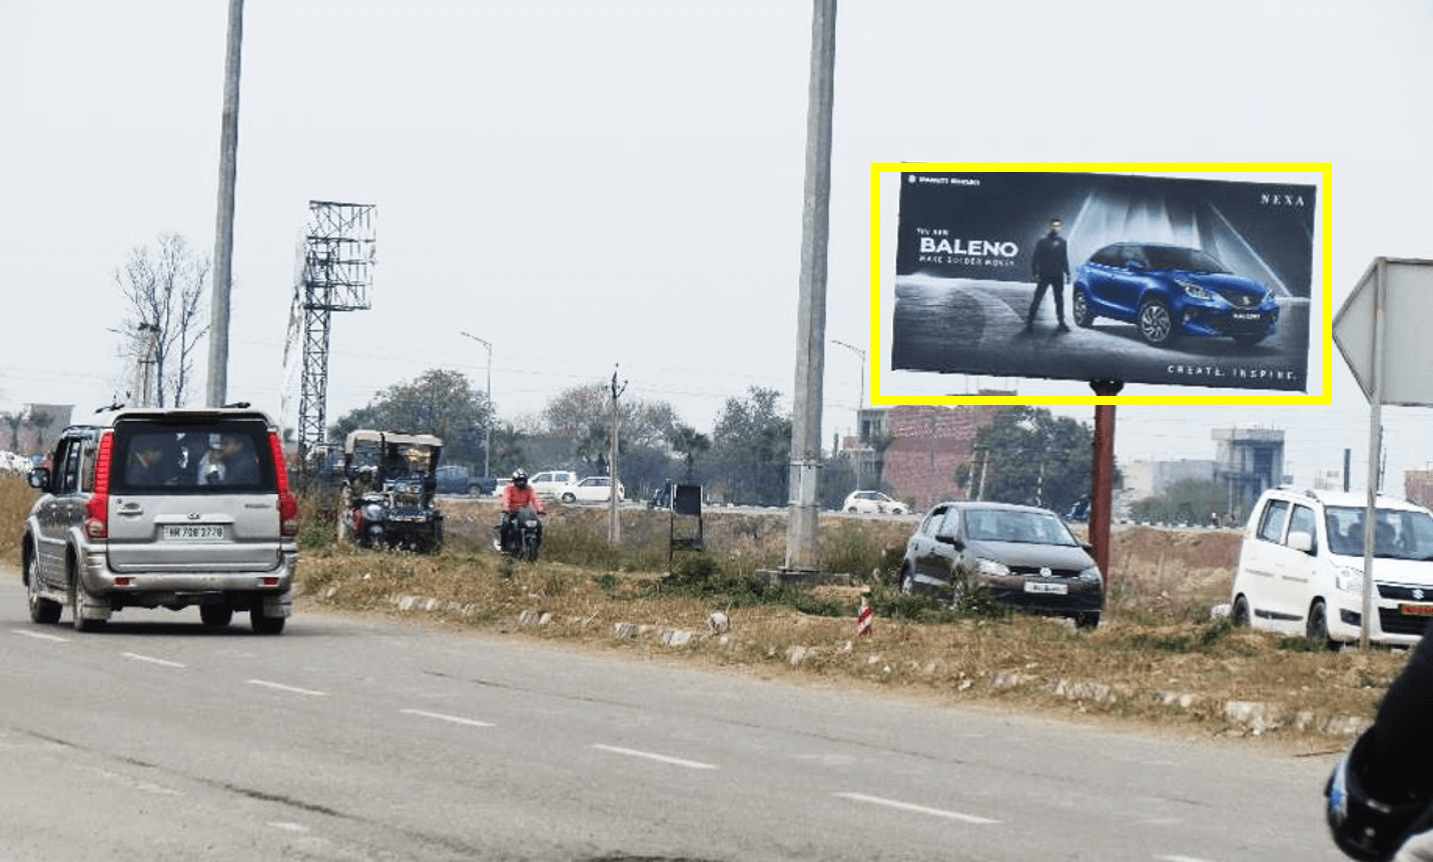 Unipole advertising at PR7 Airport Road, Zirakpur